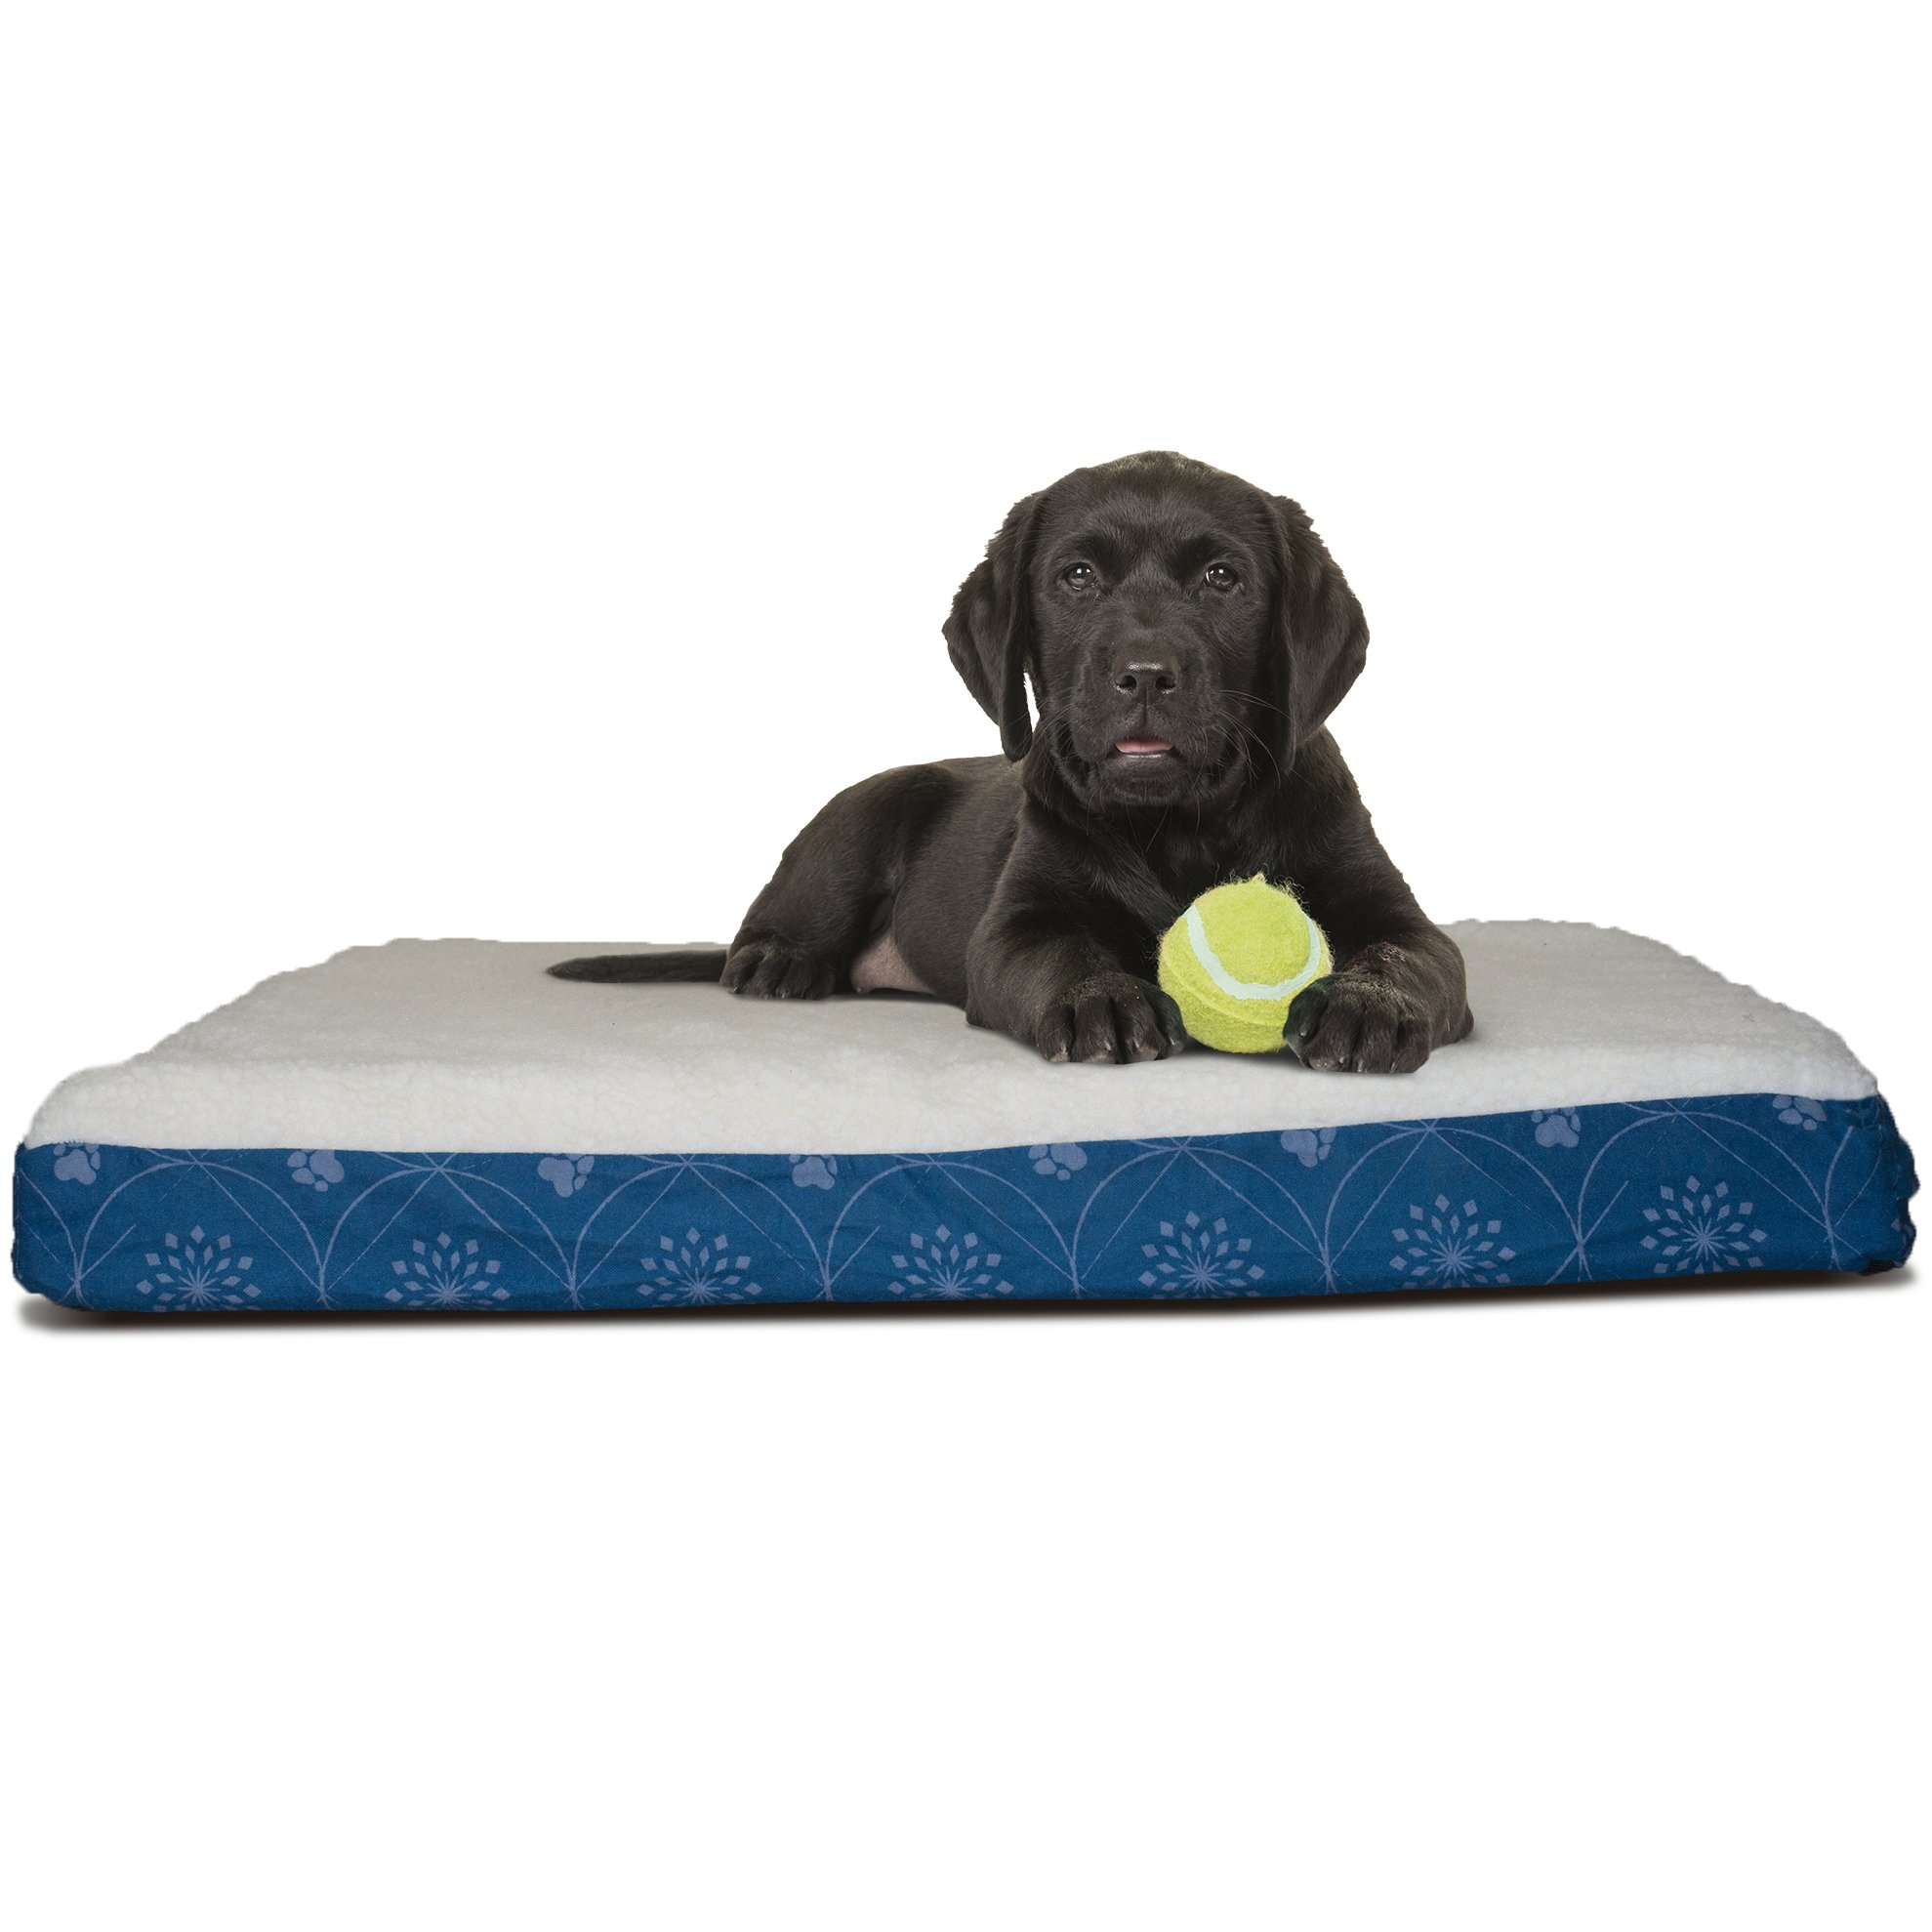 medium luxury removable pillows small and dogs for size designer bed beds dog pin cover